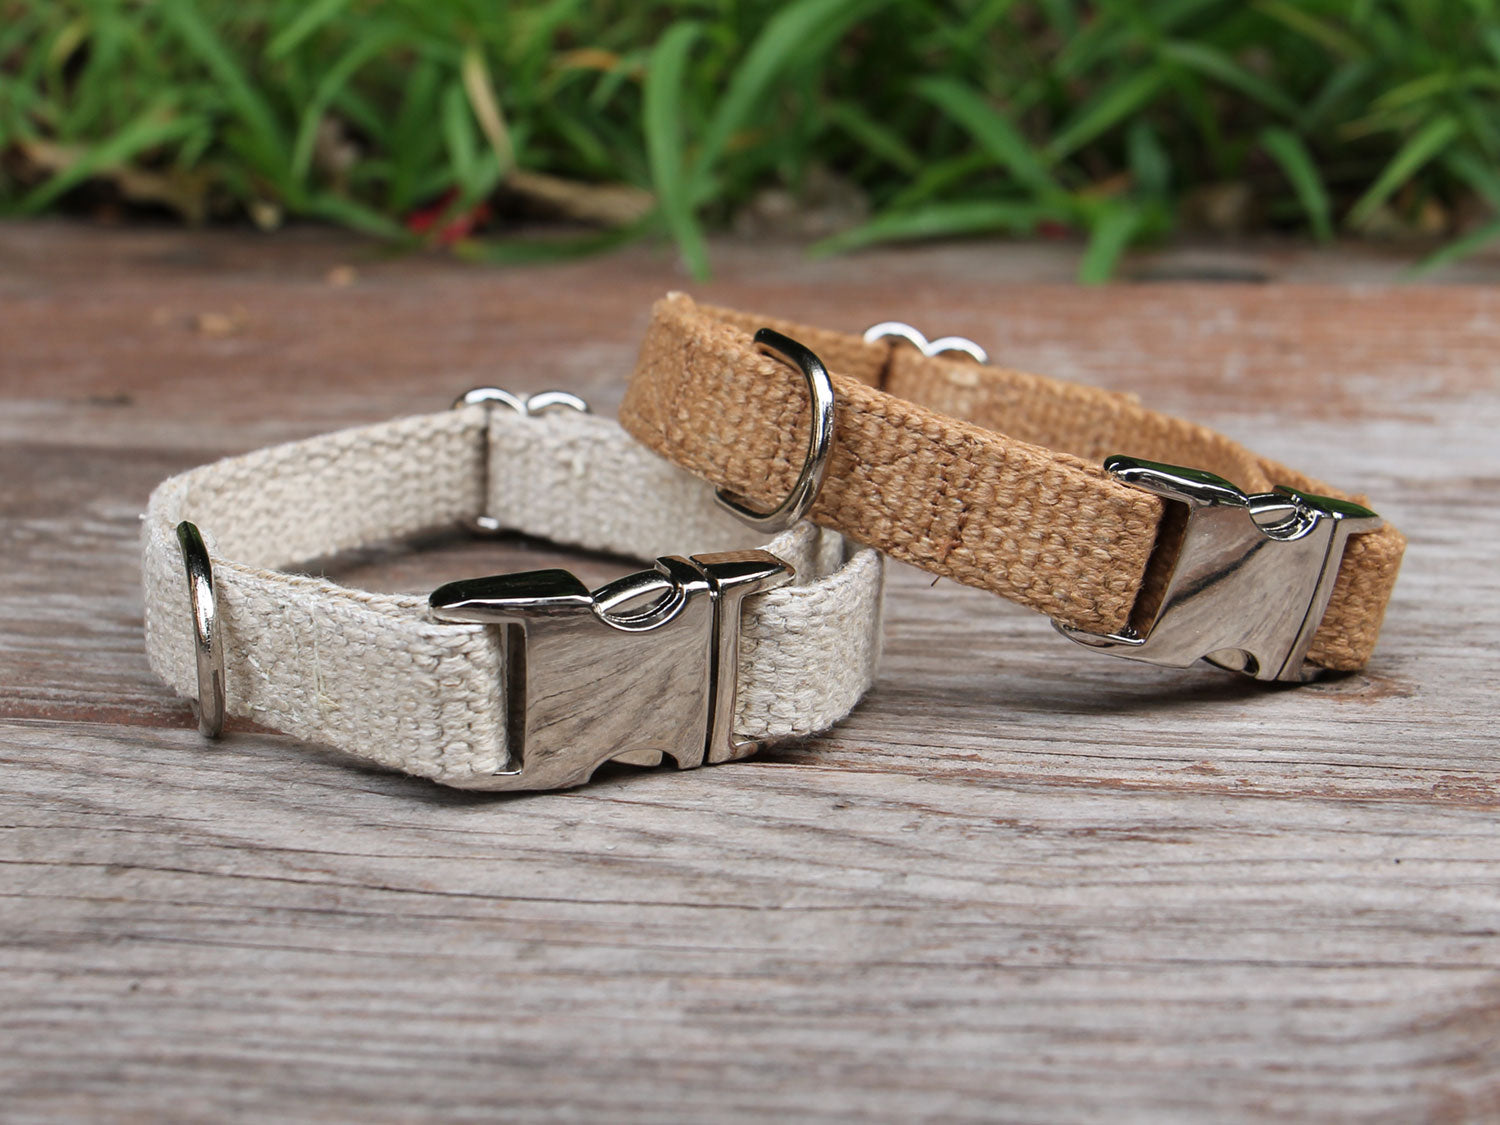 Just Hemp Dog Collar - Natural and Tea-Stained